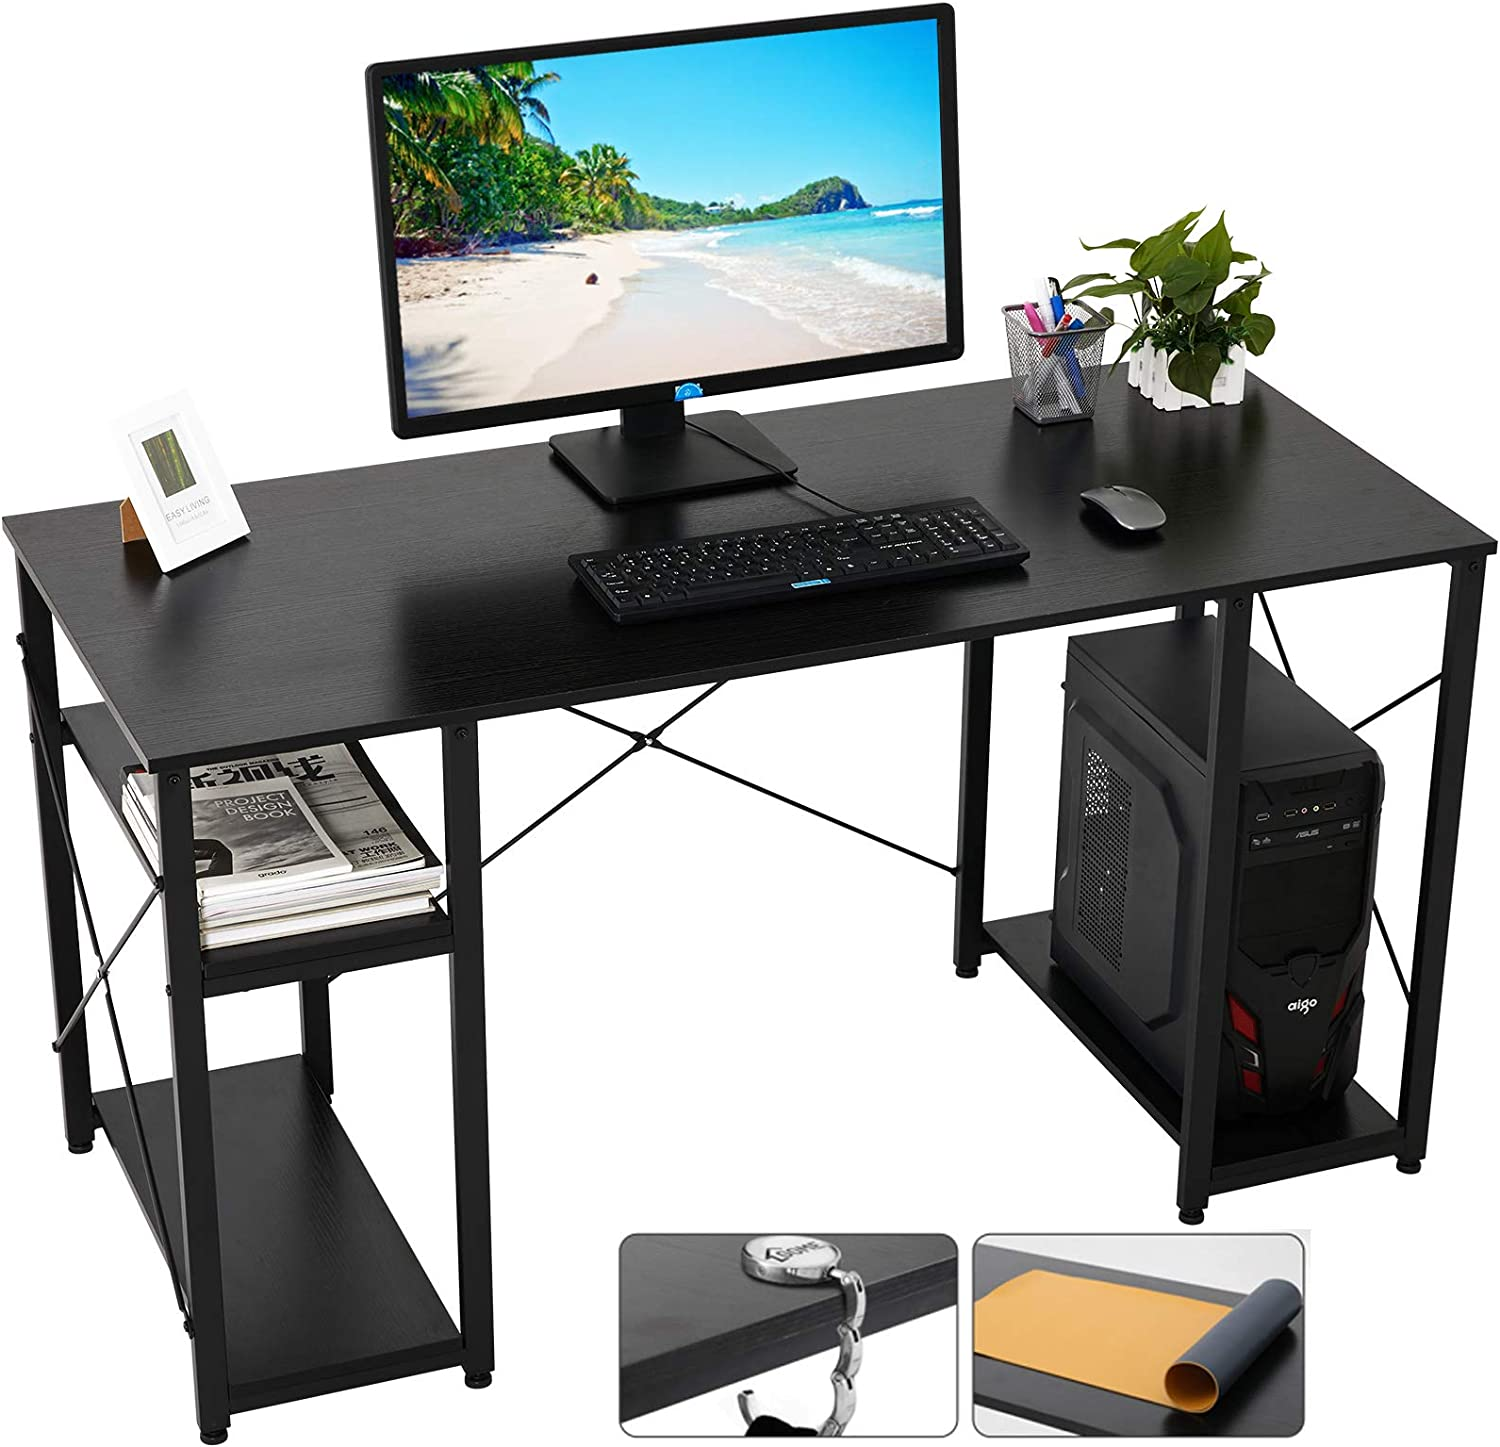 Gome Computer Desk with Shelves Storage, 55